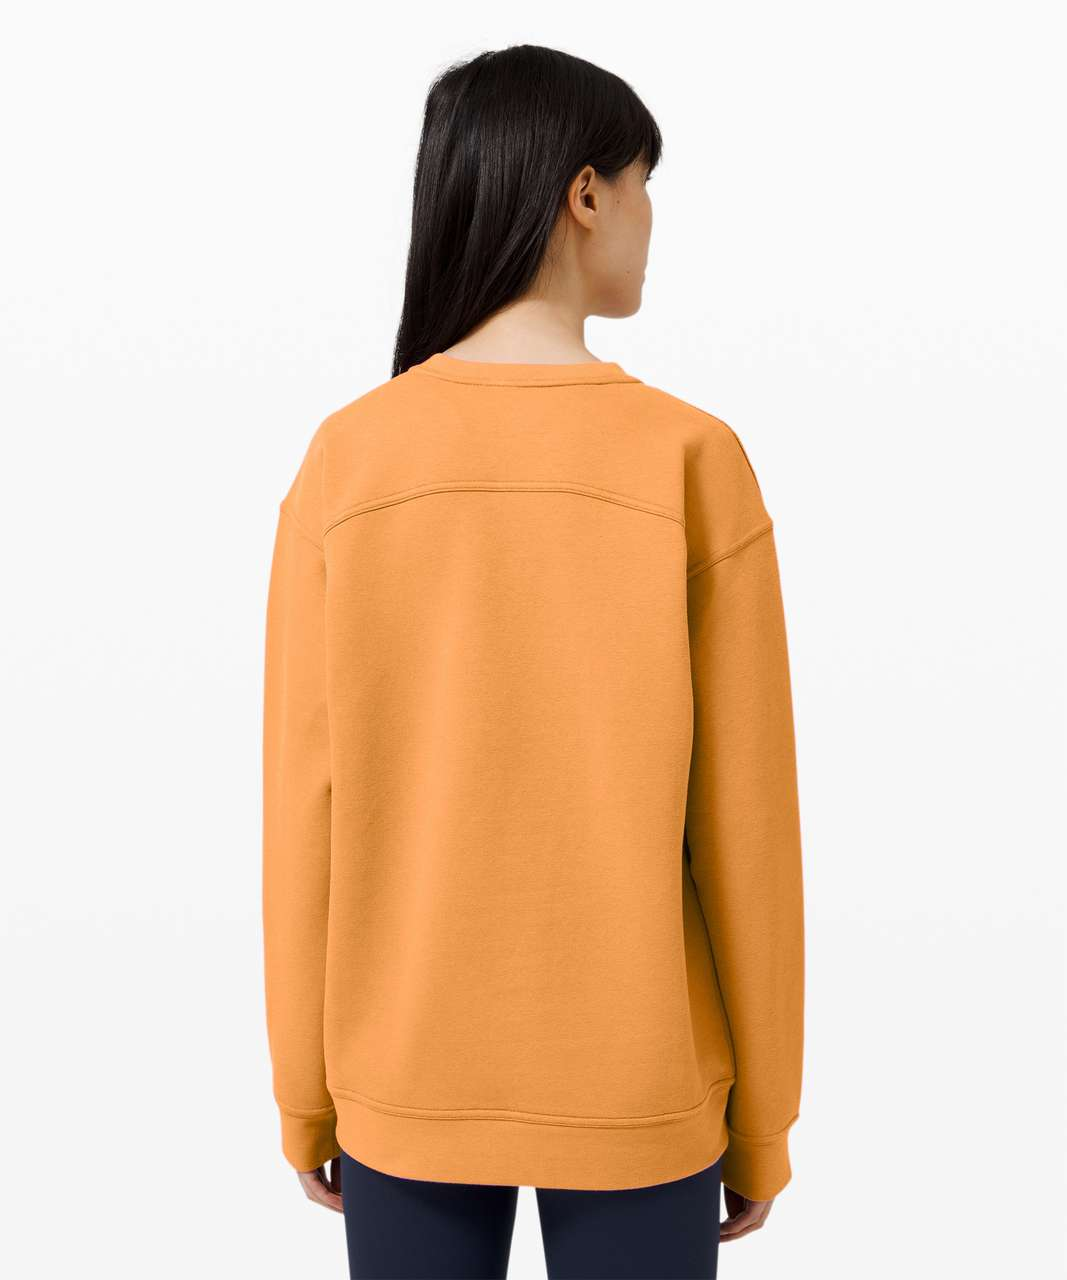 Lululemon All Yours Crew - Monarch Orange